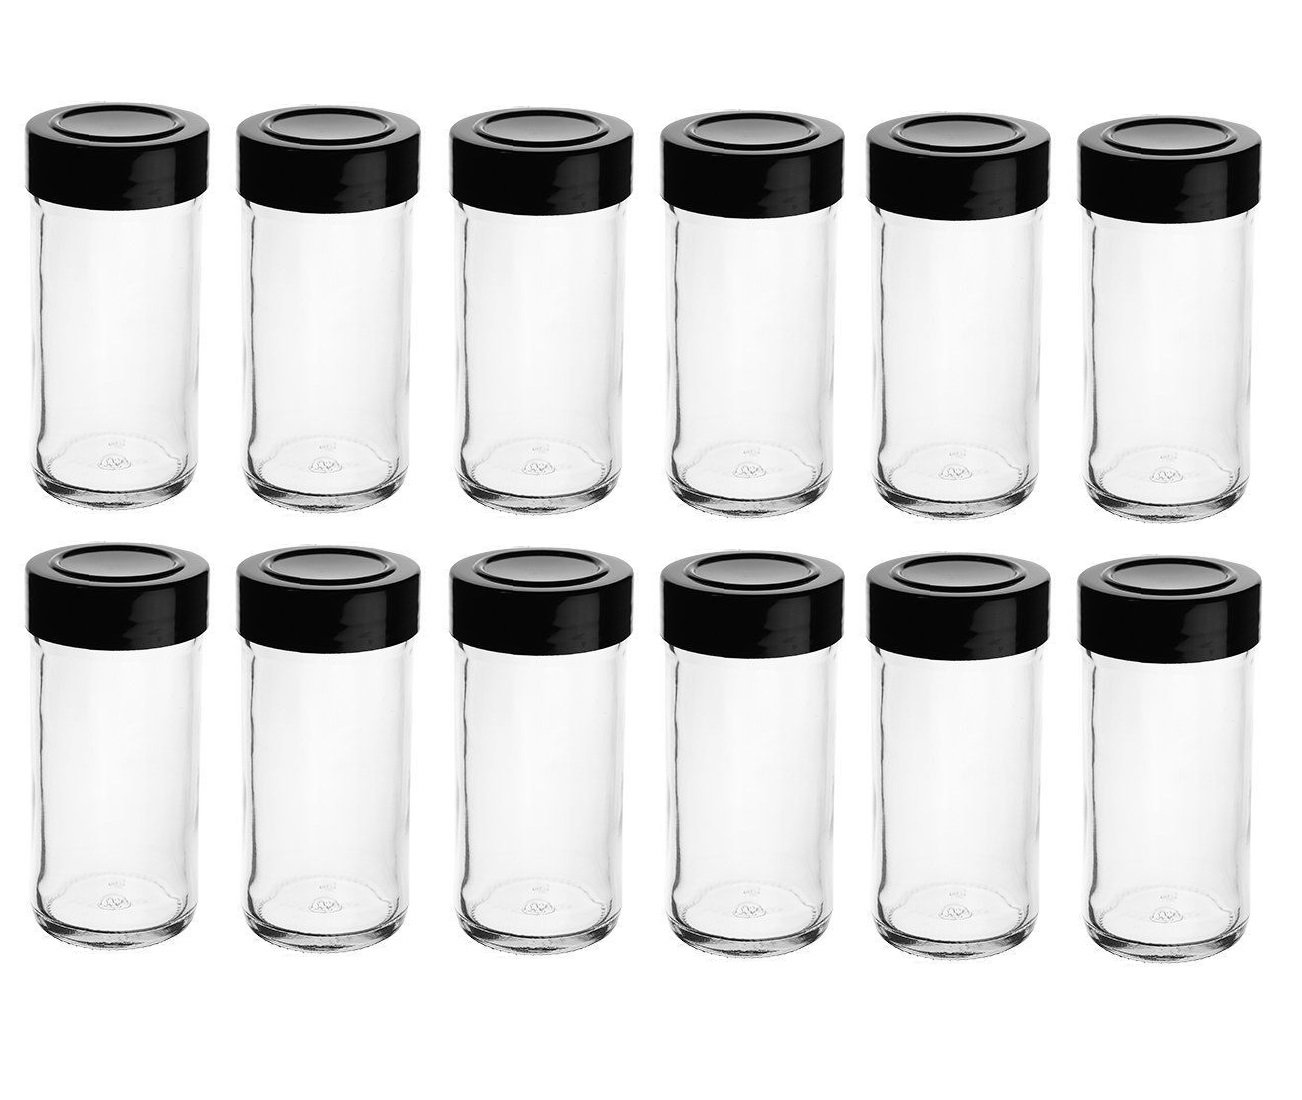 Nakpunar 12 pcs Glass Spice Jars with Shaker Sifter and Stackable Black Lids - 4 oz